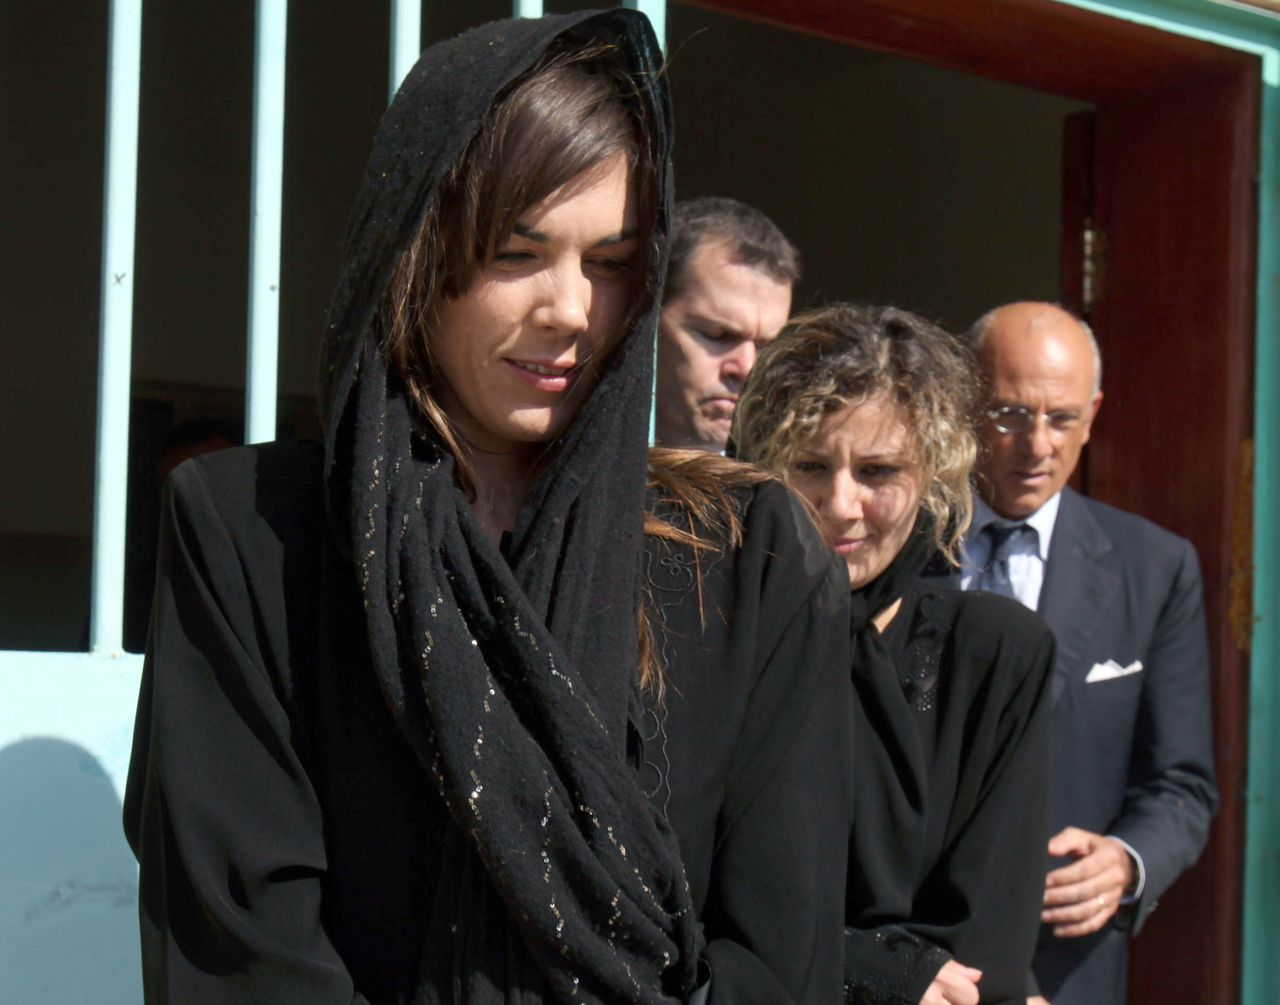 Australian lawyer Melinda Taylor (L) and her interpreter from Lebanon, Helen Assaf (C), who were part of a legal team from the International Criminal Court, detained on June 7, after visiting Seif al-Islam Kadhafi, a son of slain dictator Moamer Kadhafi, are seen following their release from detention in Zintan, a town southwest of Tripoli, on July 2, 2012. Taylor, Assaf, and two colleagues, Russian Alexander Khodakov and Esteban Peralta Losilla from Spain, were released by a brigade holding Seif al-Islam Kadhafi, after Taylor was accused of carrying a pen camera and attempting to give Seif al-Islam a coded letter from his former right-hand man, Mohammed Ismail, who is wanted by the Libyan authorities. AFP PHOTO/MAHMUD TURKIA